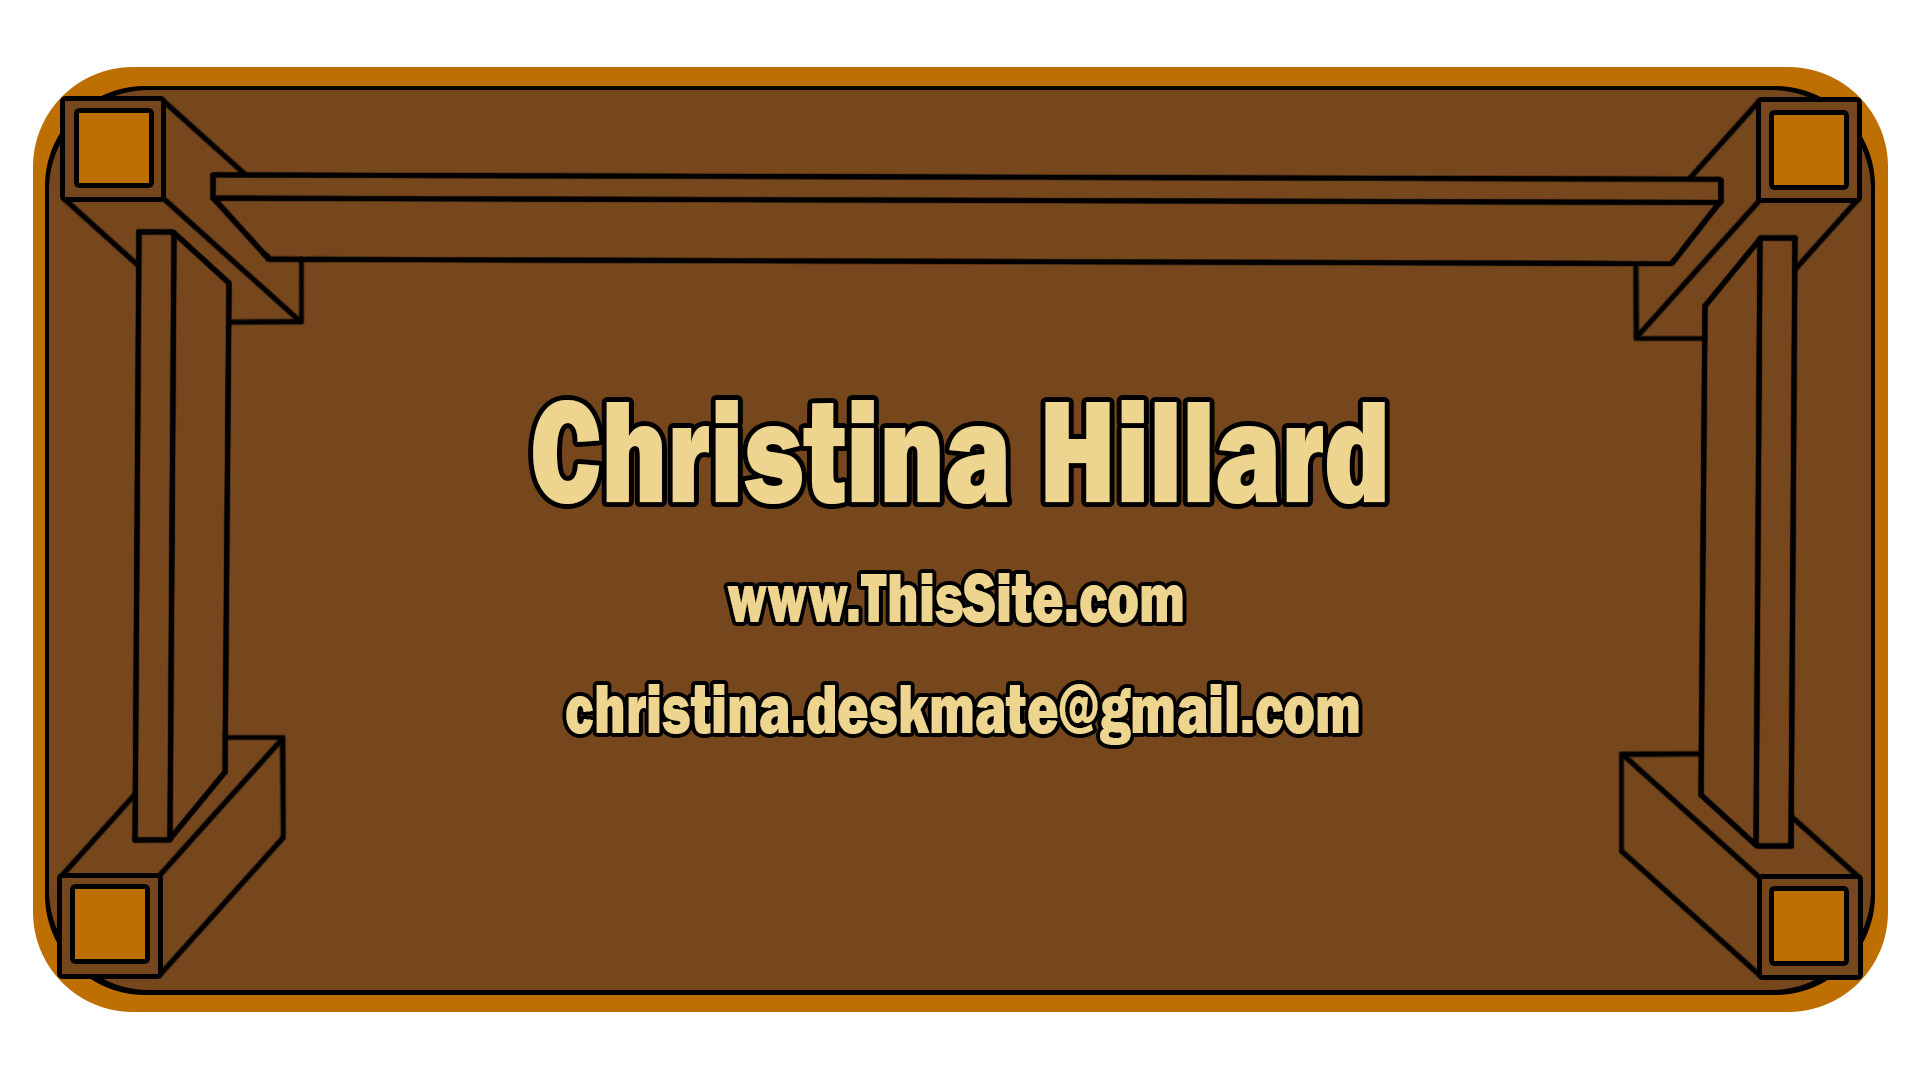 The backside (WIP) of the business card